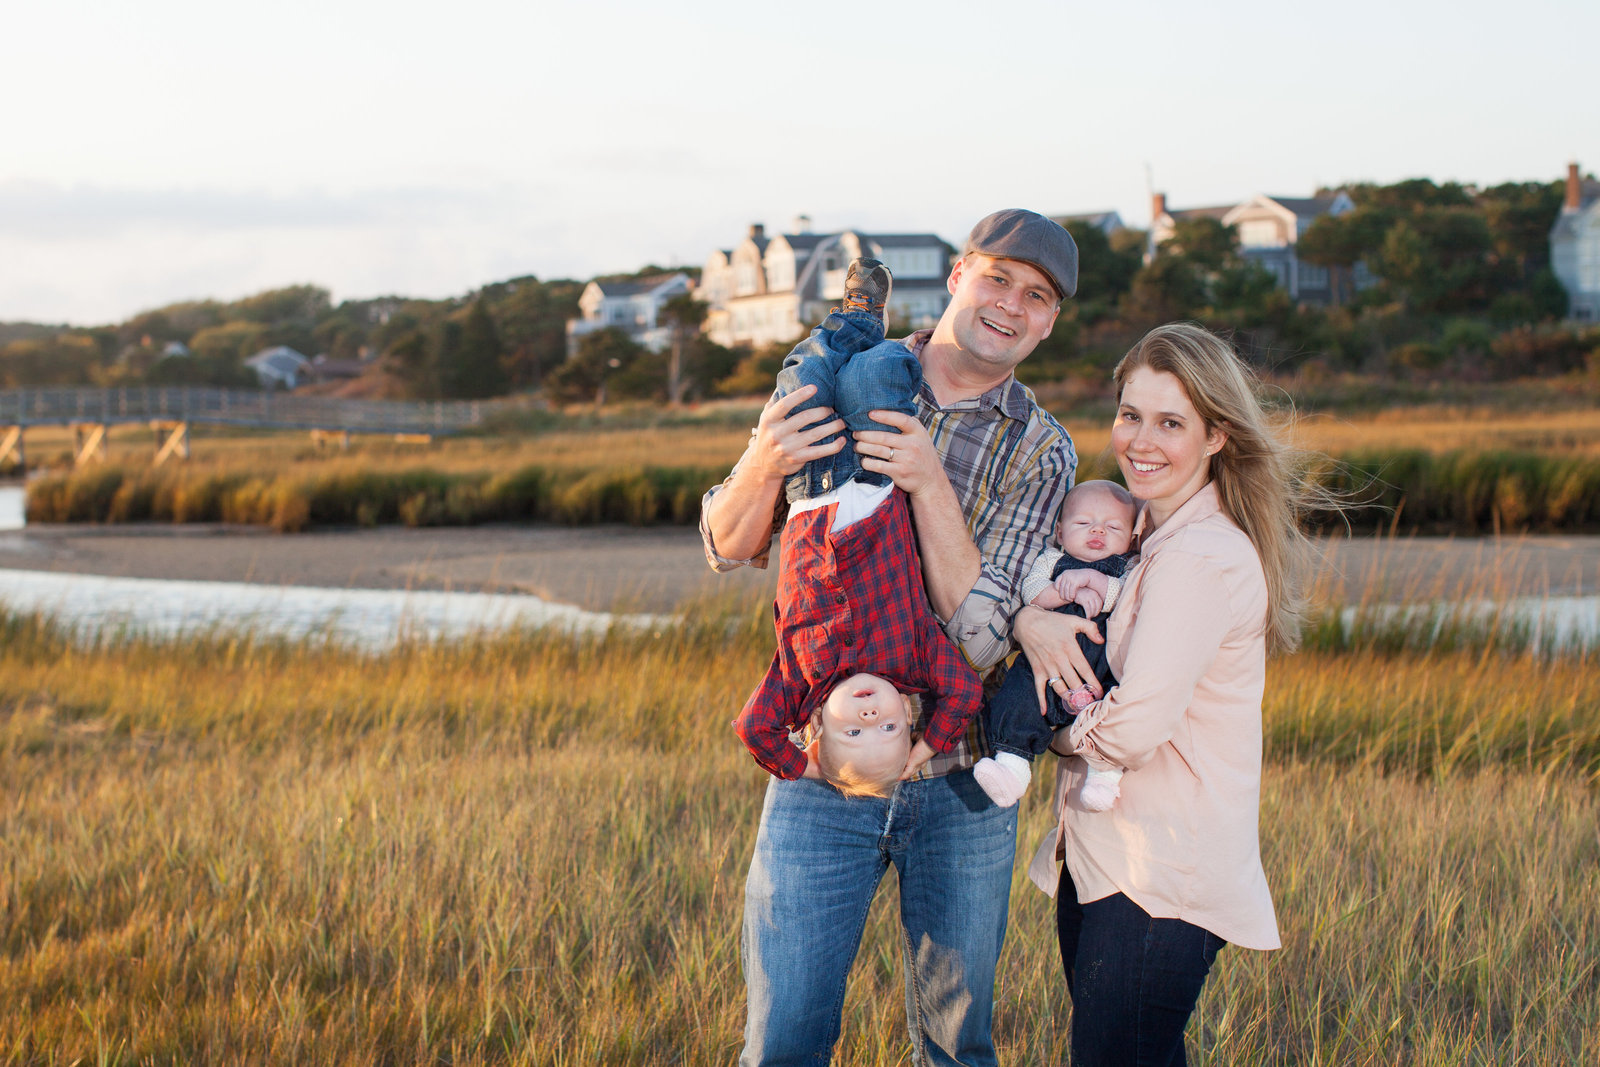 MKP_Chatham Family Photos_Chatham Beach_CapeCodPhotography_2014-031